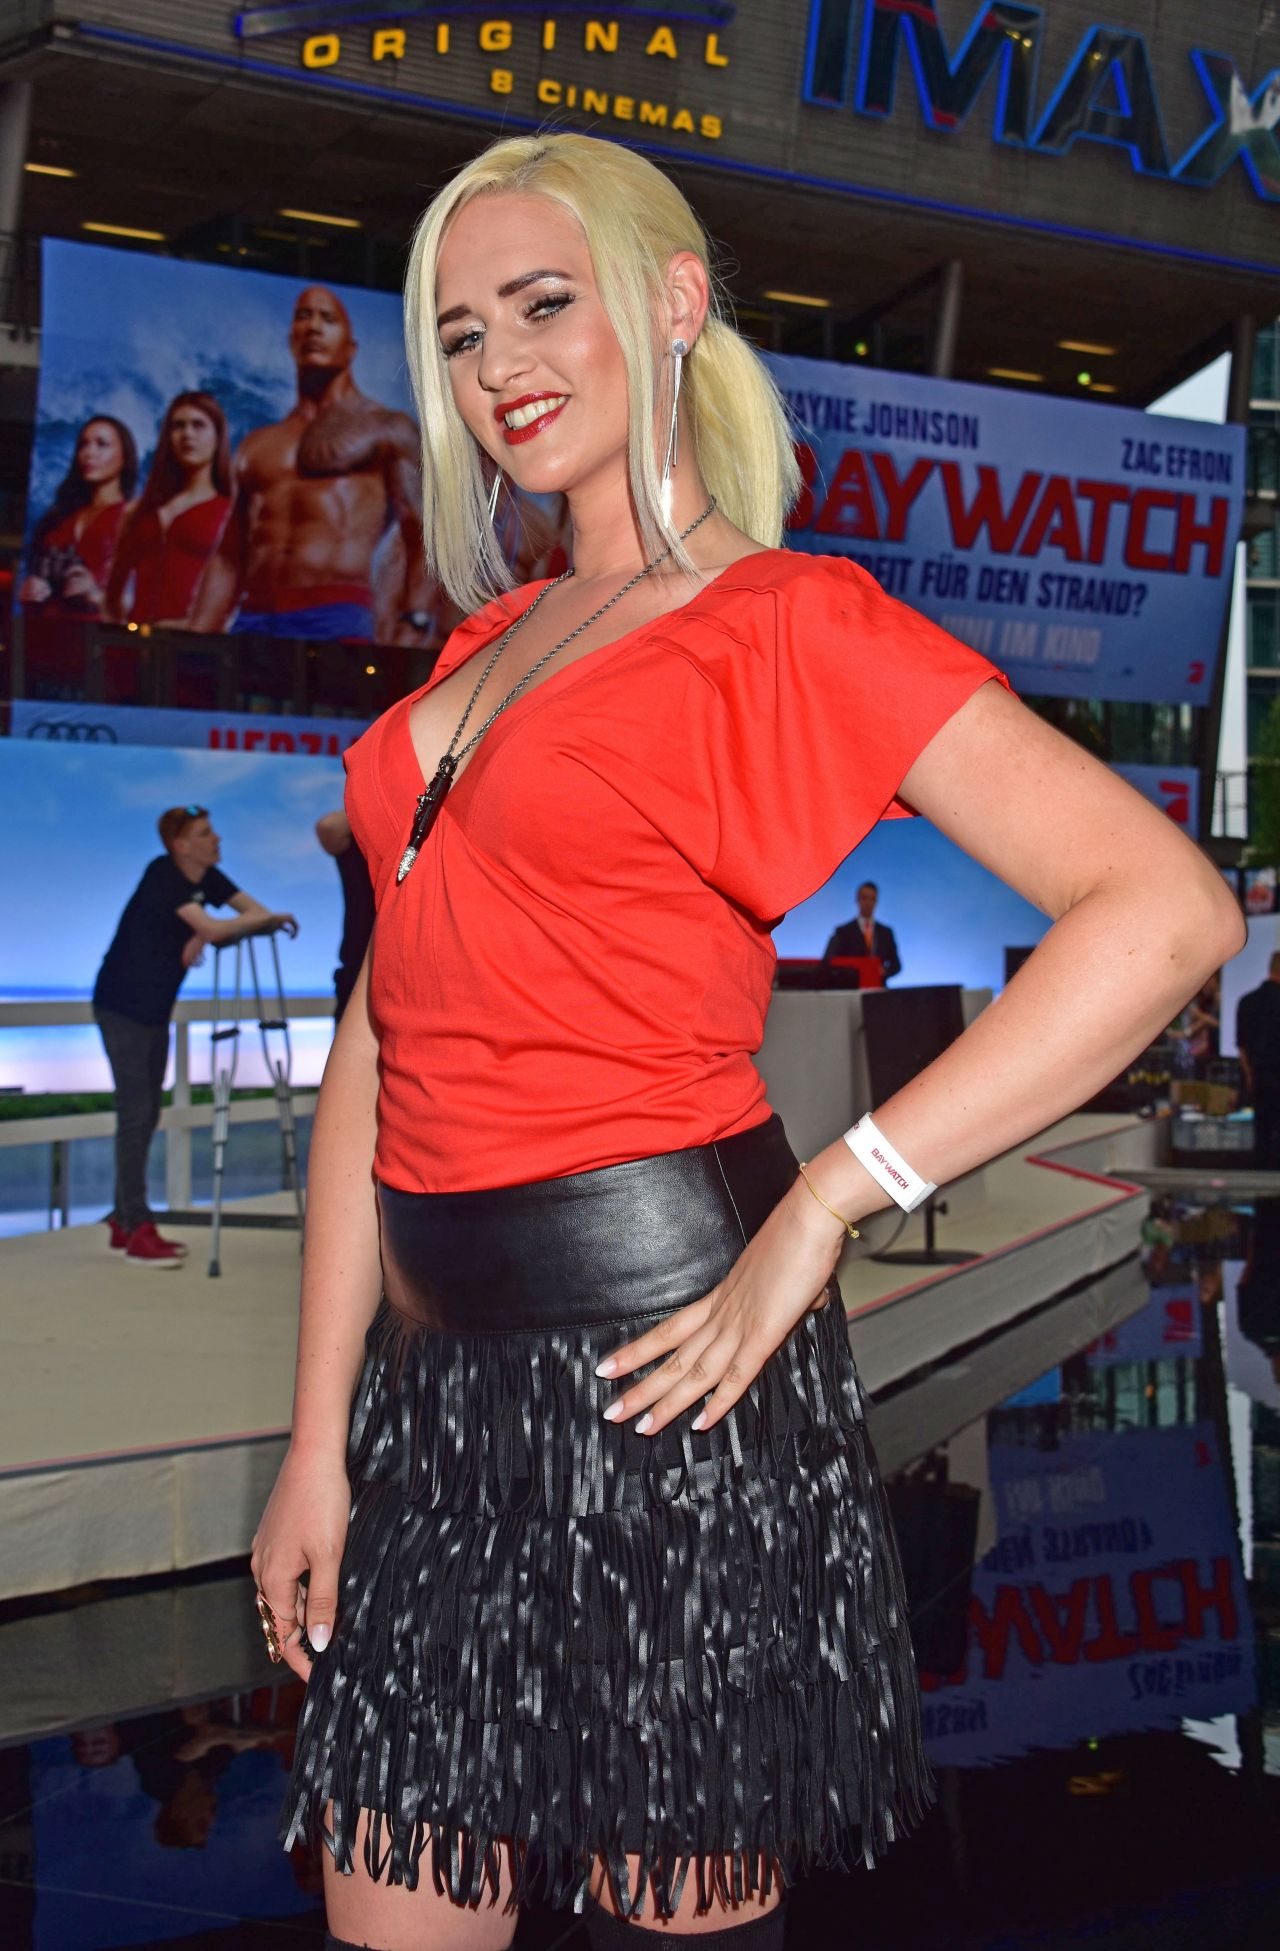 Janina youssefian baywatch premiere in berlin nudes (72 pictures)